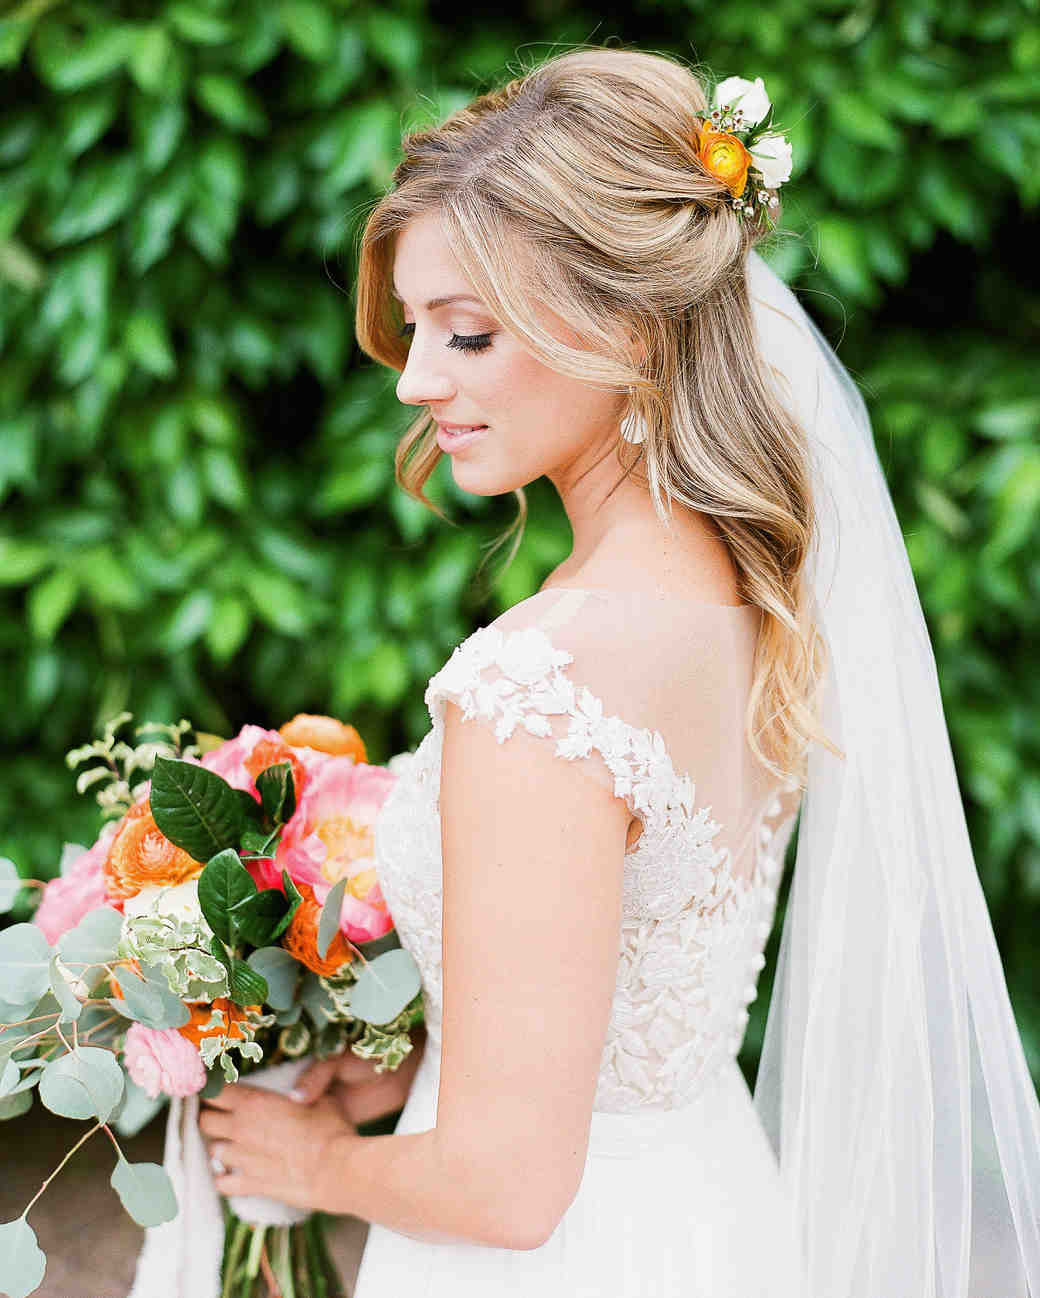 Wedding Hairstyle: 28 Half-Up, Half-Down Wedding Hairstyles We Love